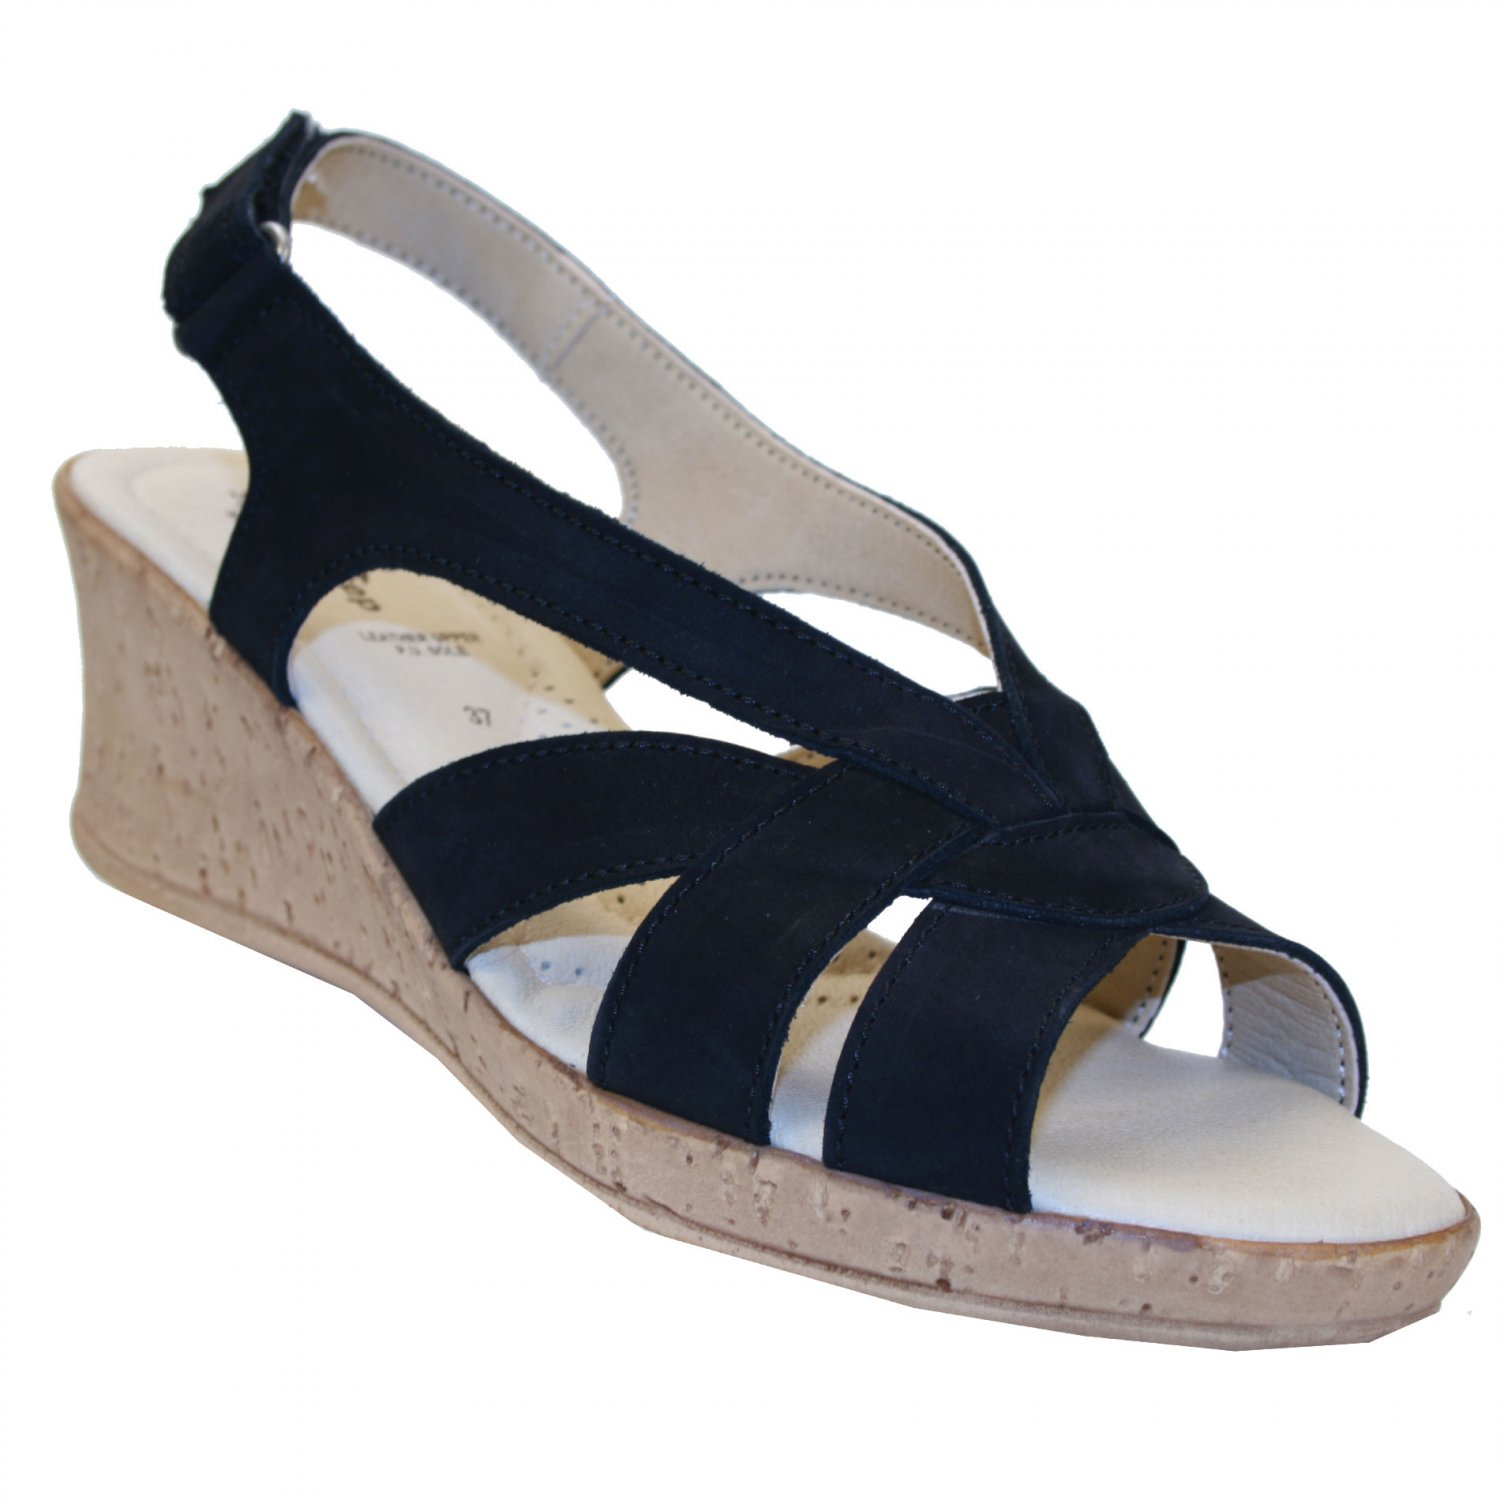 Spring Step SONG Sandals Shoes All Sizes & Colors $69.